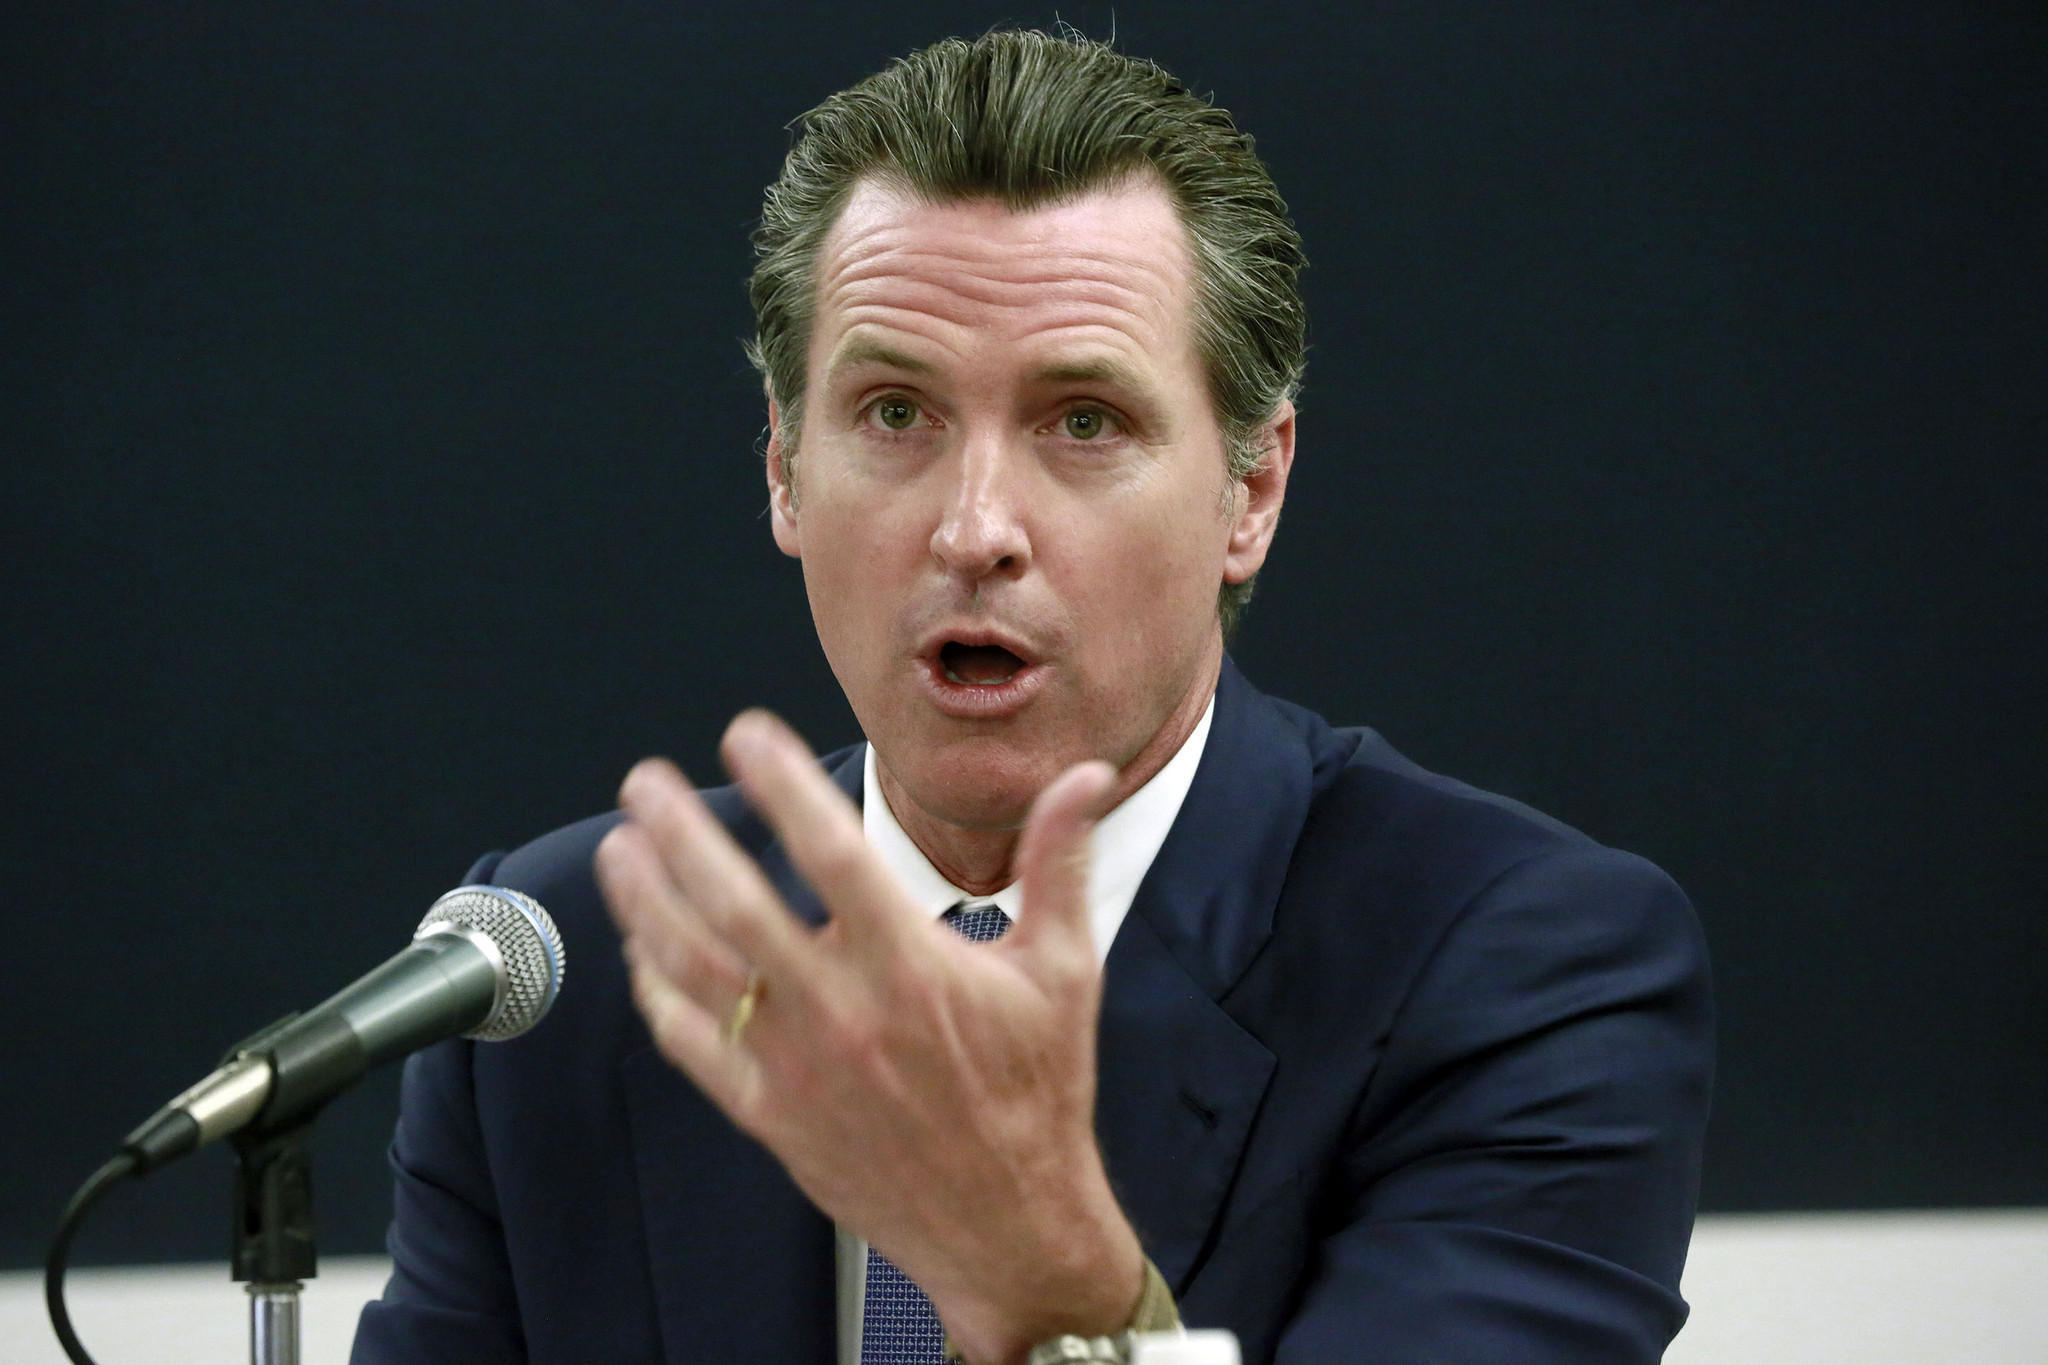 California Lt. Gov. Gavin Newsom speaks at an event in Los Angeles in April. (Nick Ut / Associated Press)